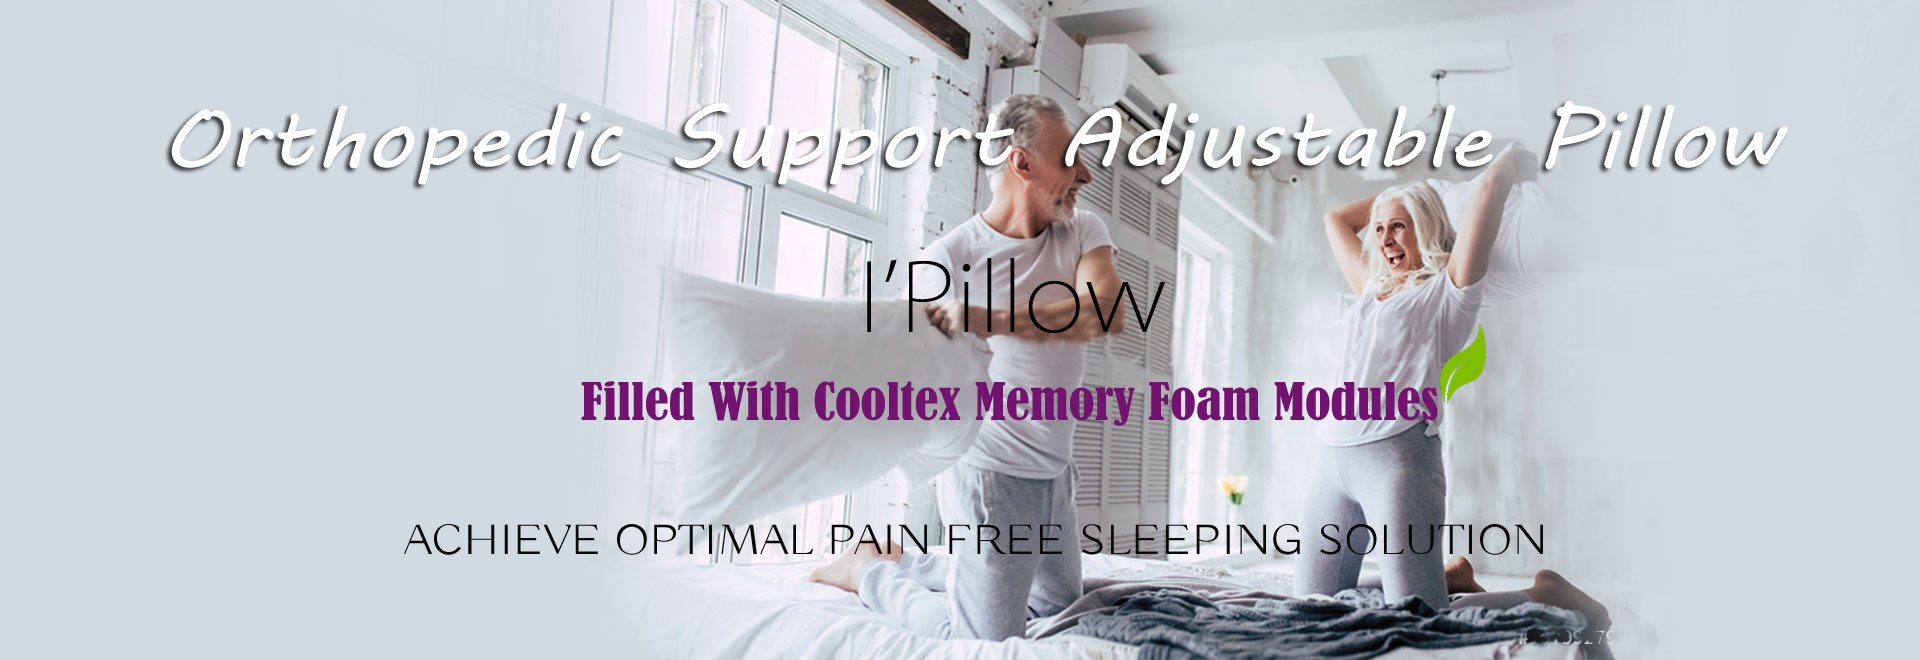 We offer the best pillow for neck and shoulder pain,cooling memory foam pillow,copper pillow, cooling copper pillow,cooling